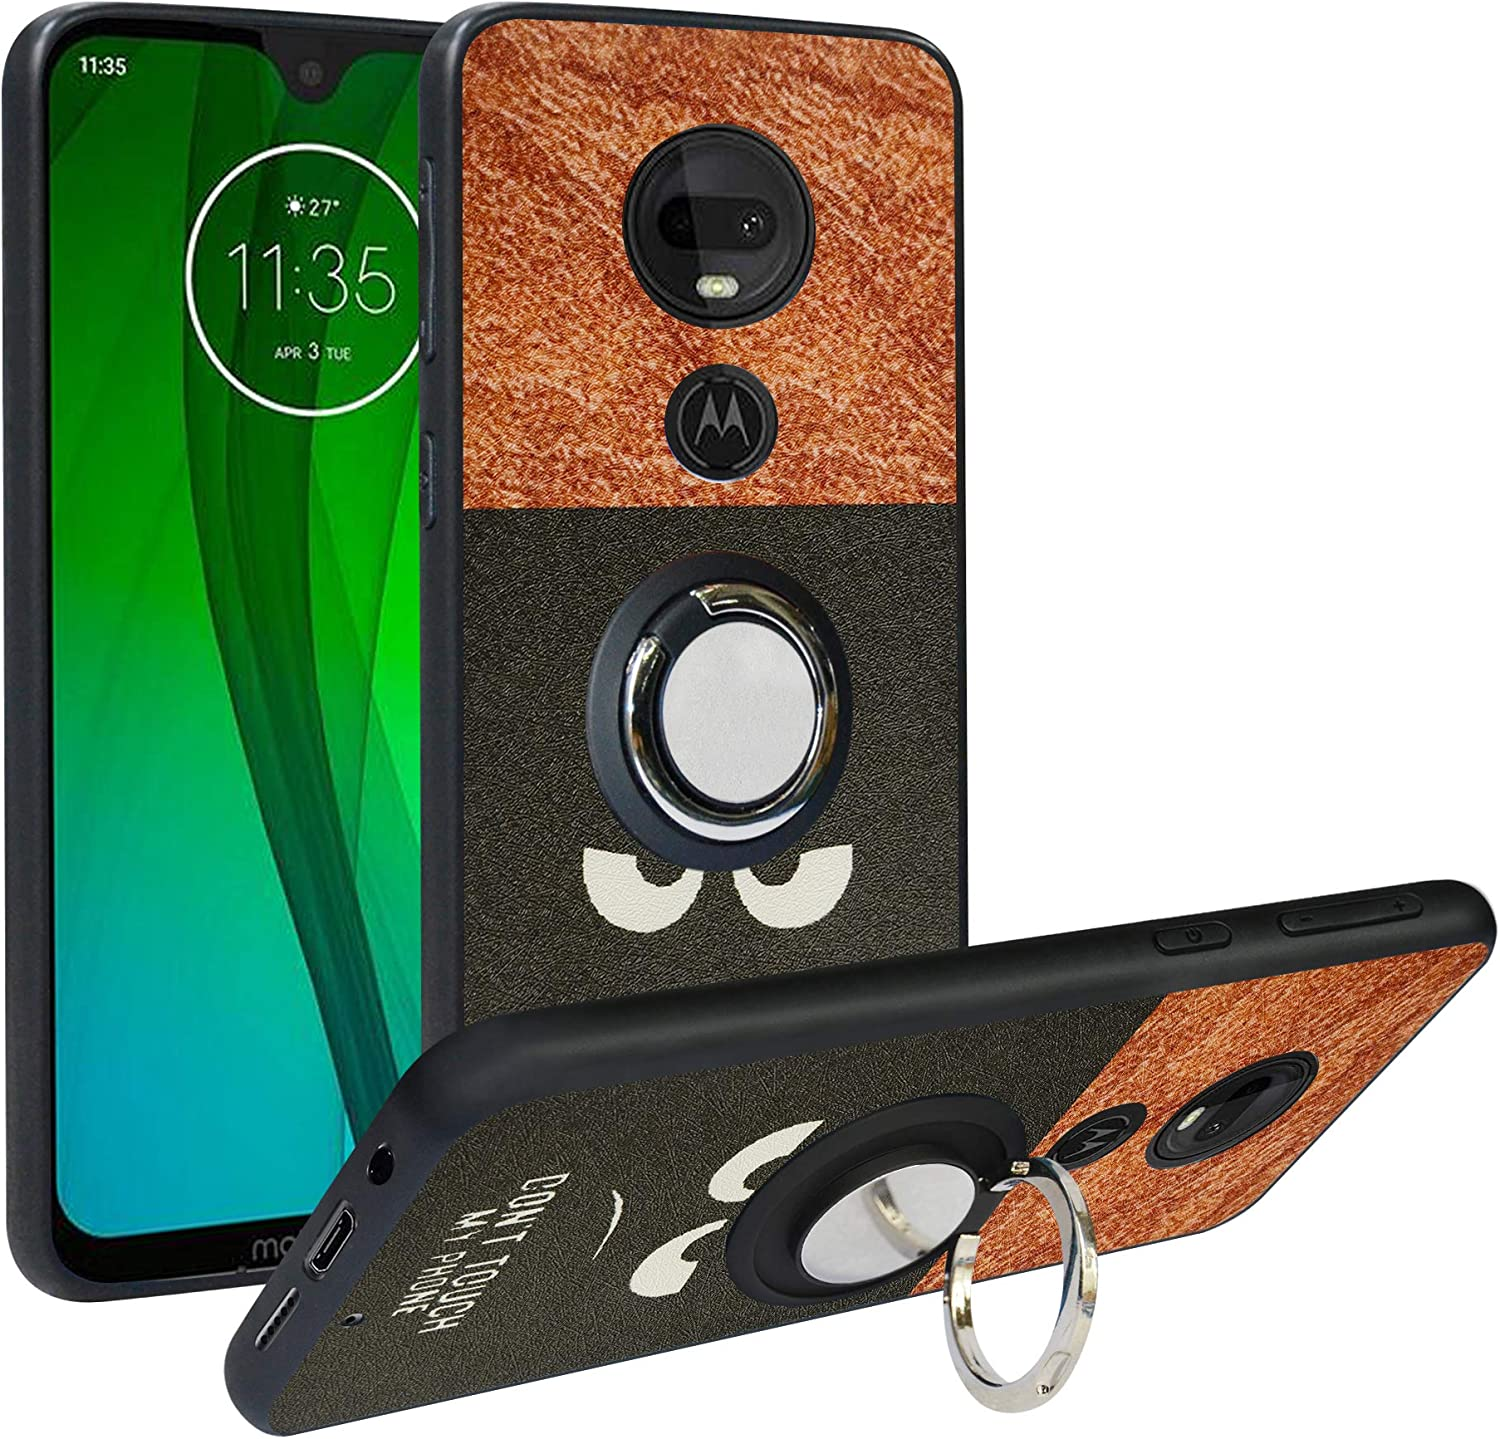 Alapmk Compatible with Motorola Moto G7 Case,[Pattern Design] Soft TPU Hard PC Protective Durable Case Cover with Kickstand 360°Adjustable Ring Grip Stand Work for Moto G7/G7 Plus,Do not Touch